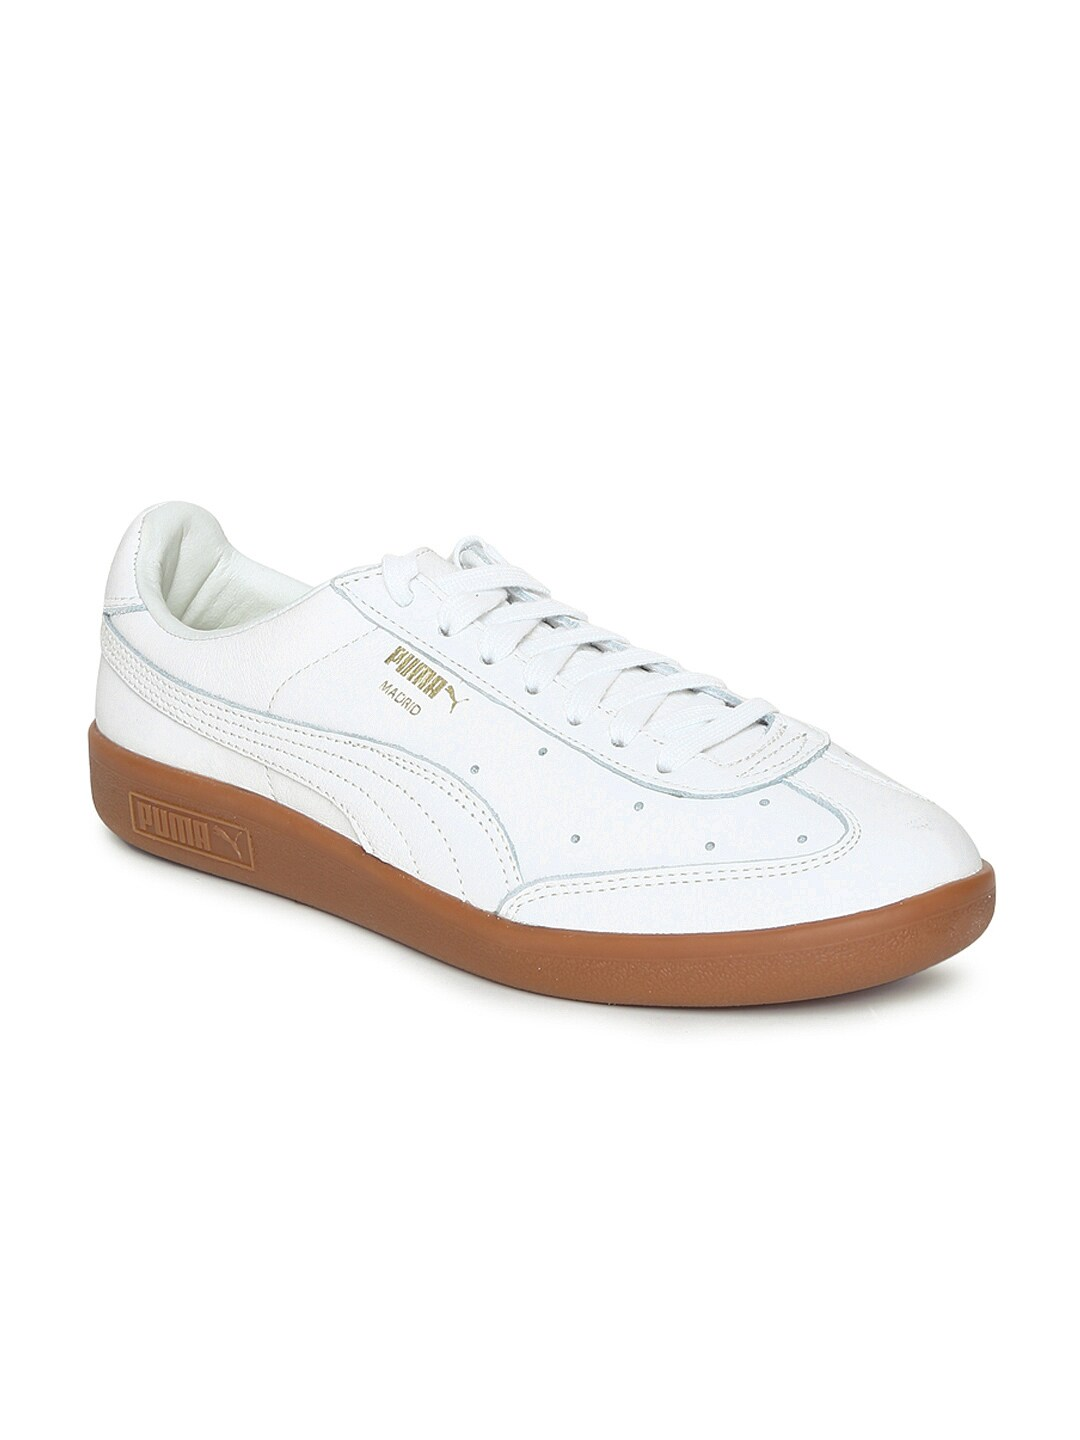 Puma White Sneakers - Buy Puma White Sneakers online in India bc9791db8